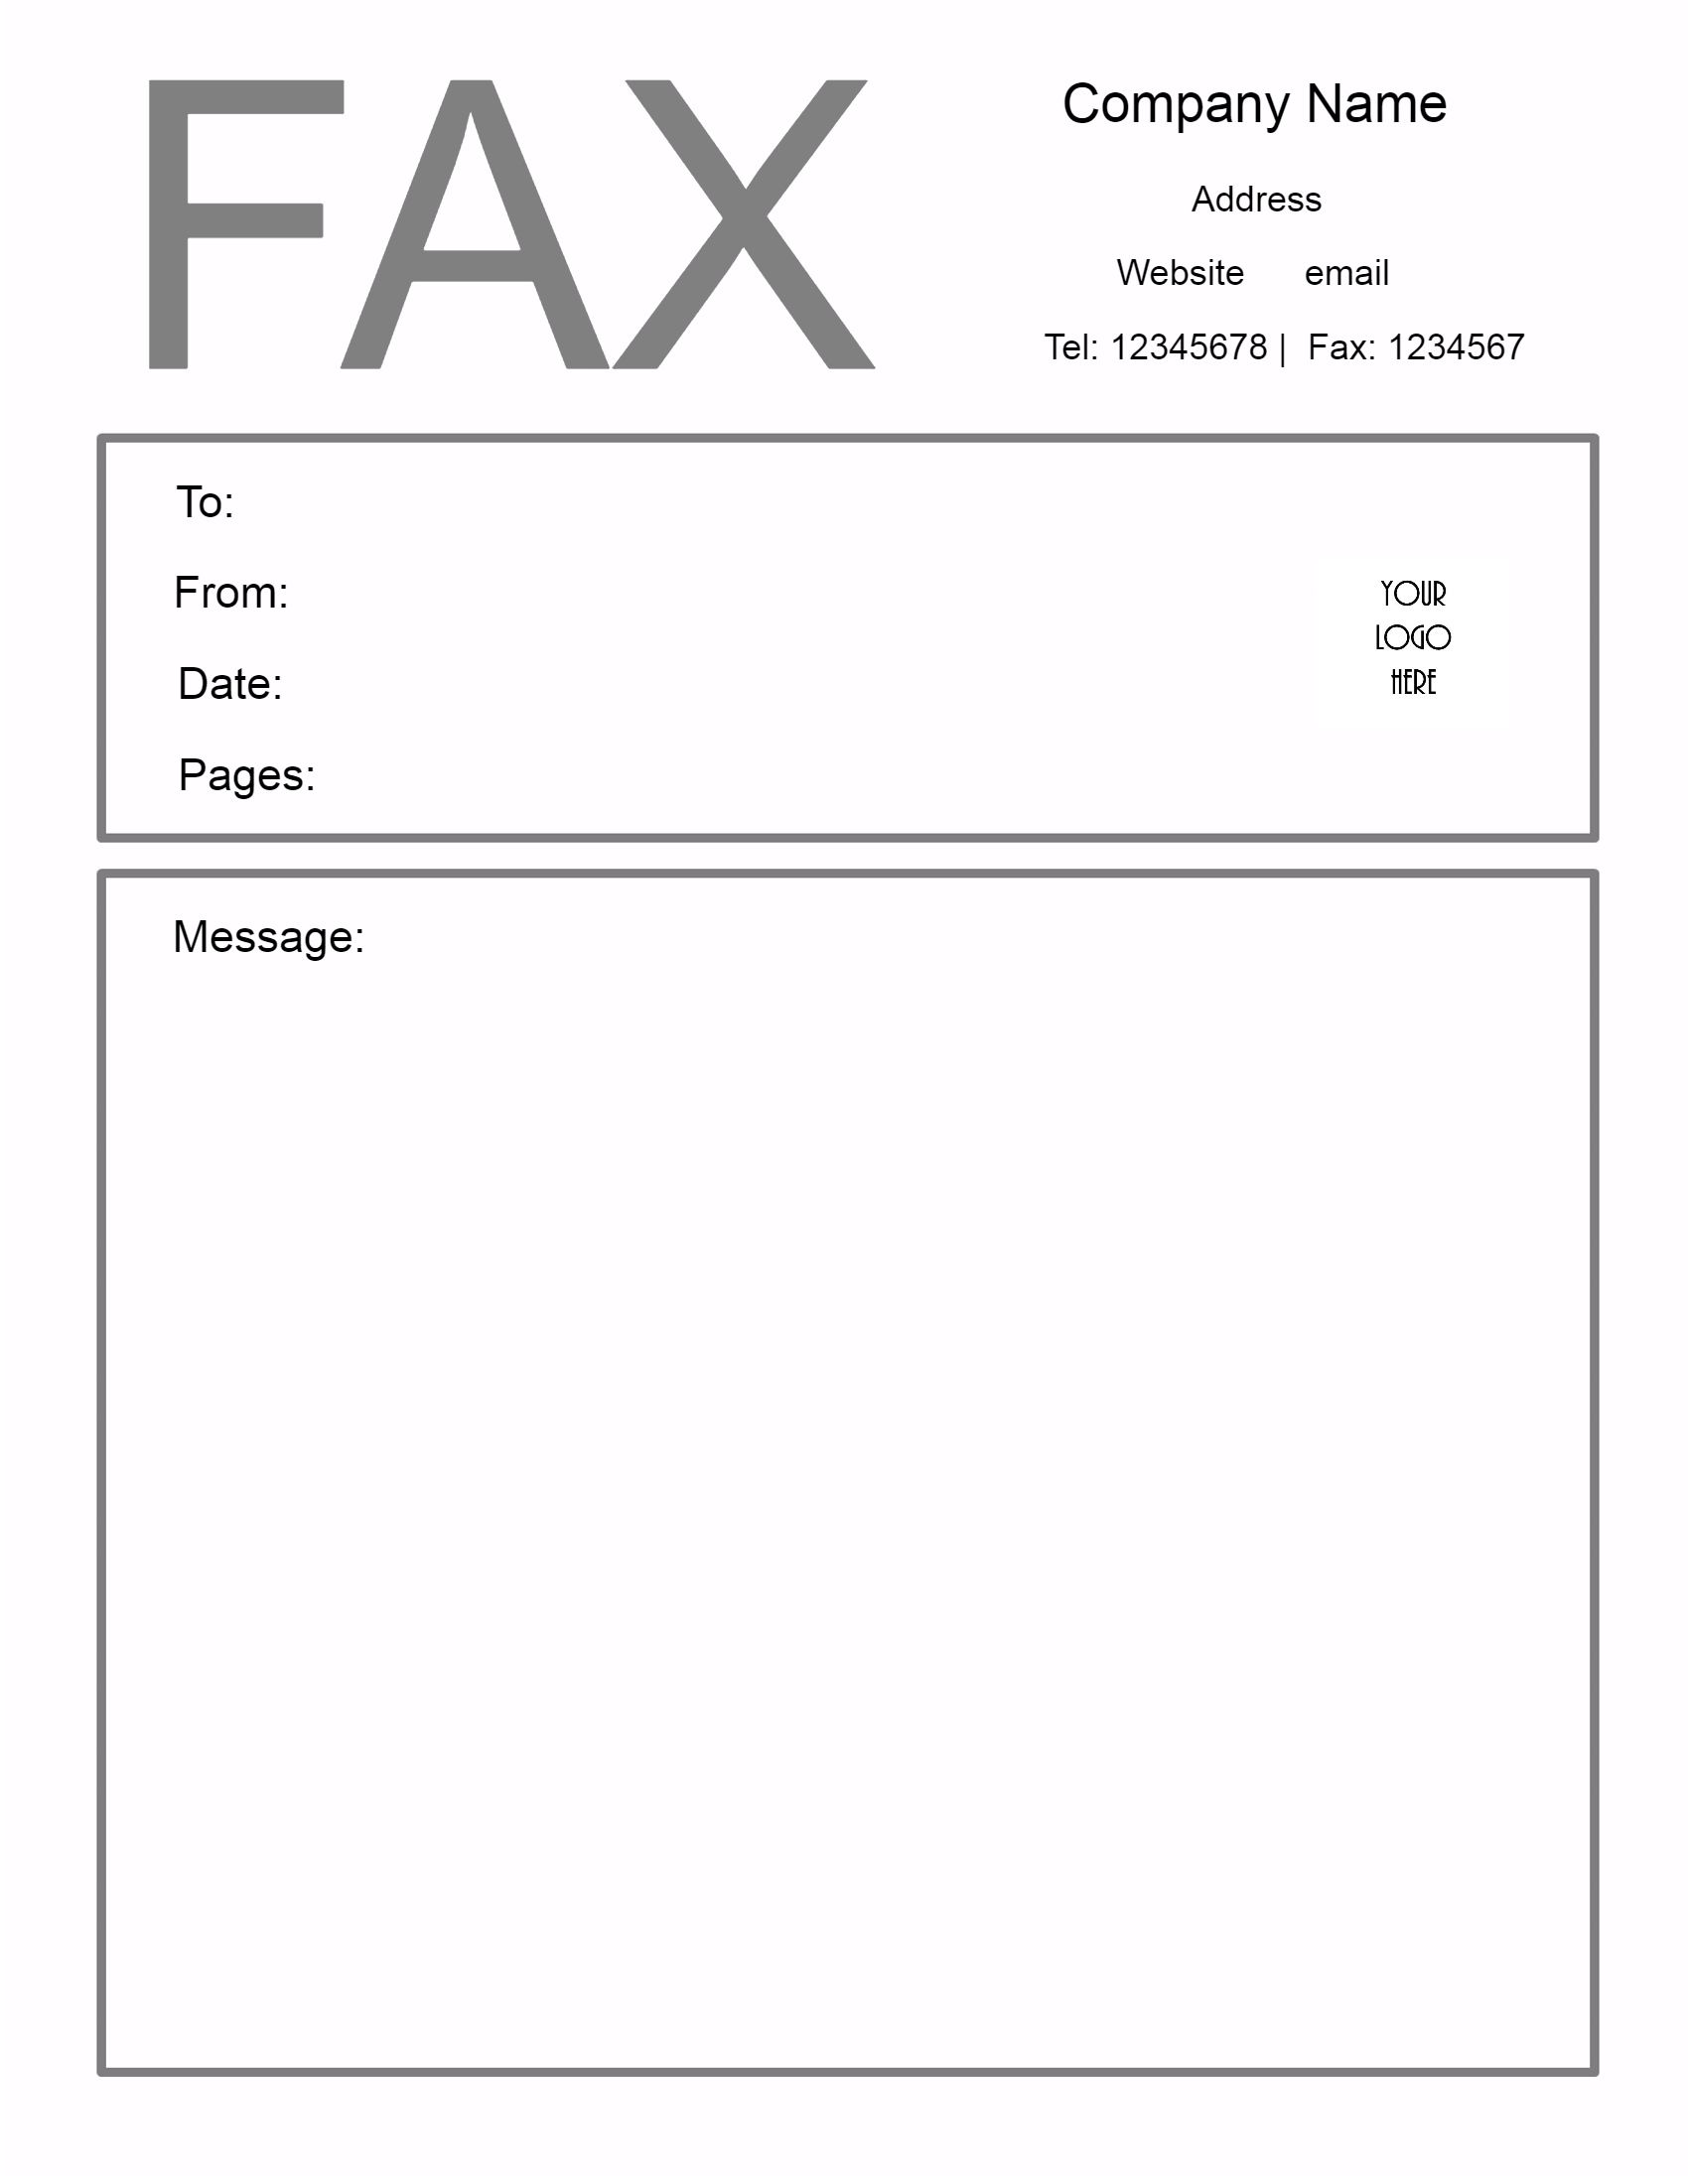 fax transmittal template - Etame.mibawa.co